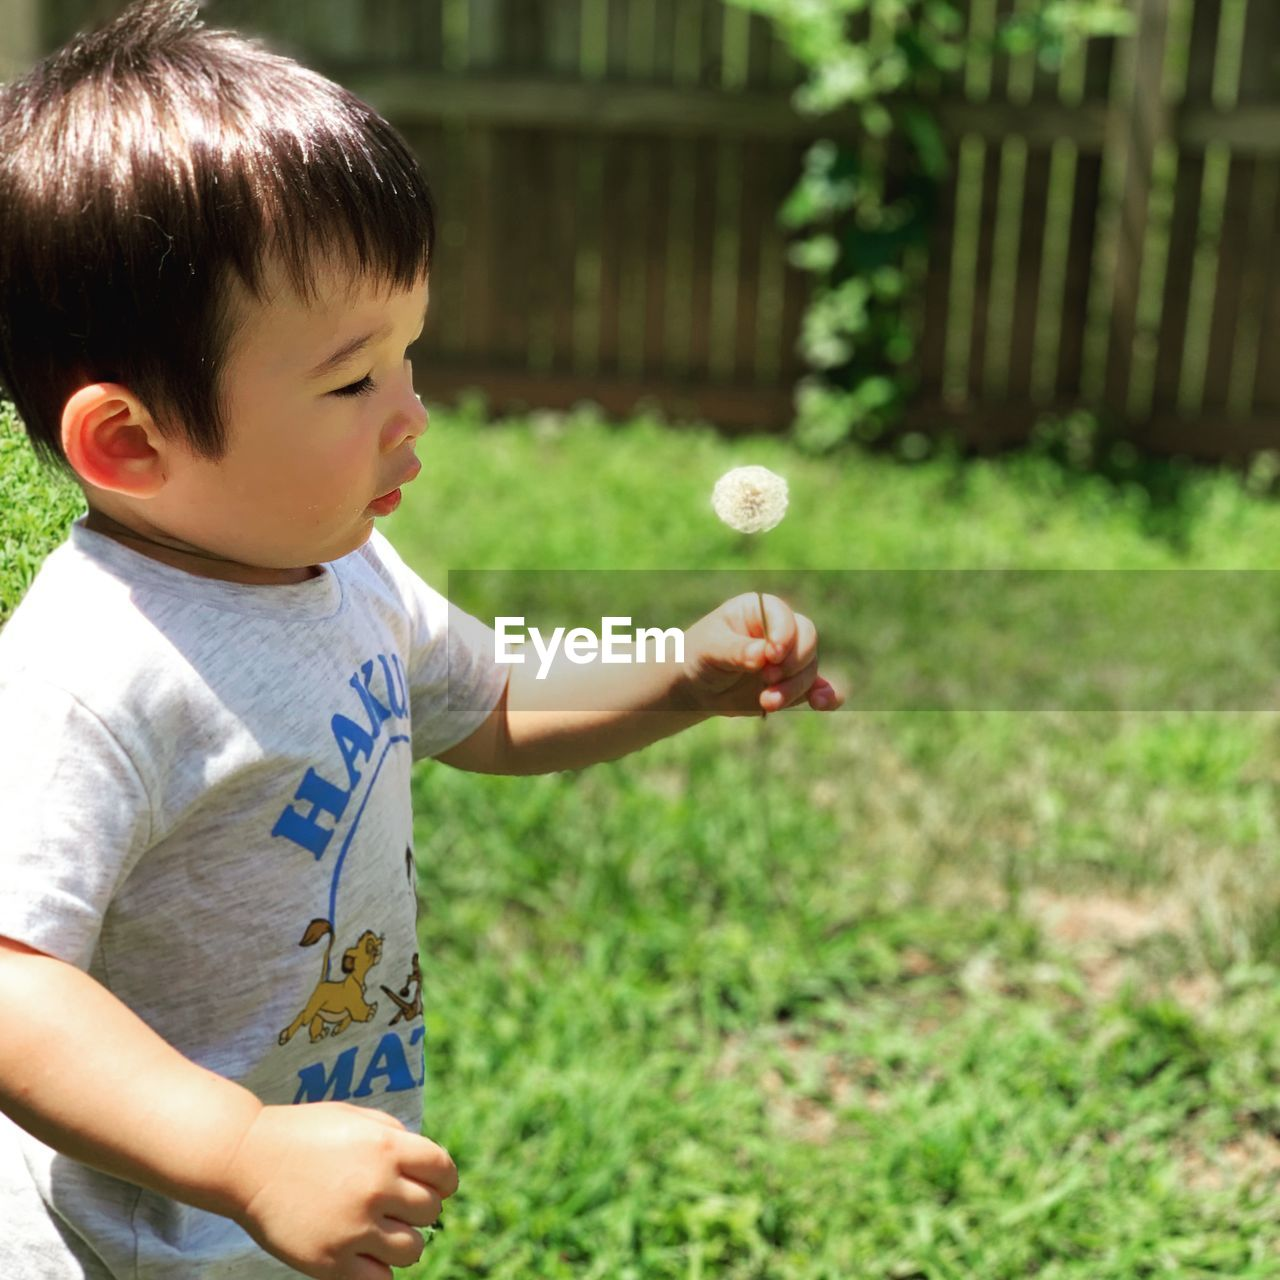 child, childhood, real people, one person, boys, casual clothing, men, males, innocence, leisure activity, cute, field, lifestyles, day, focus on foreground, standing, grass, plant